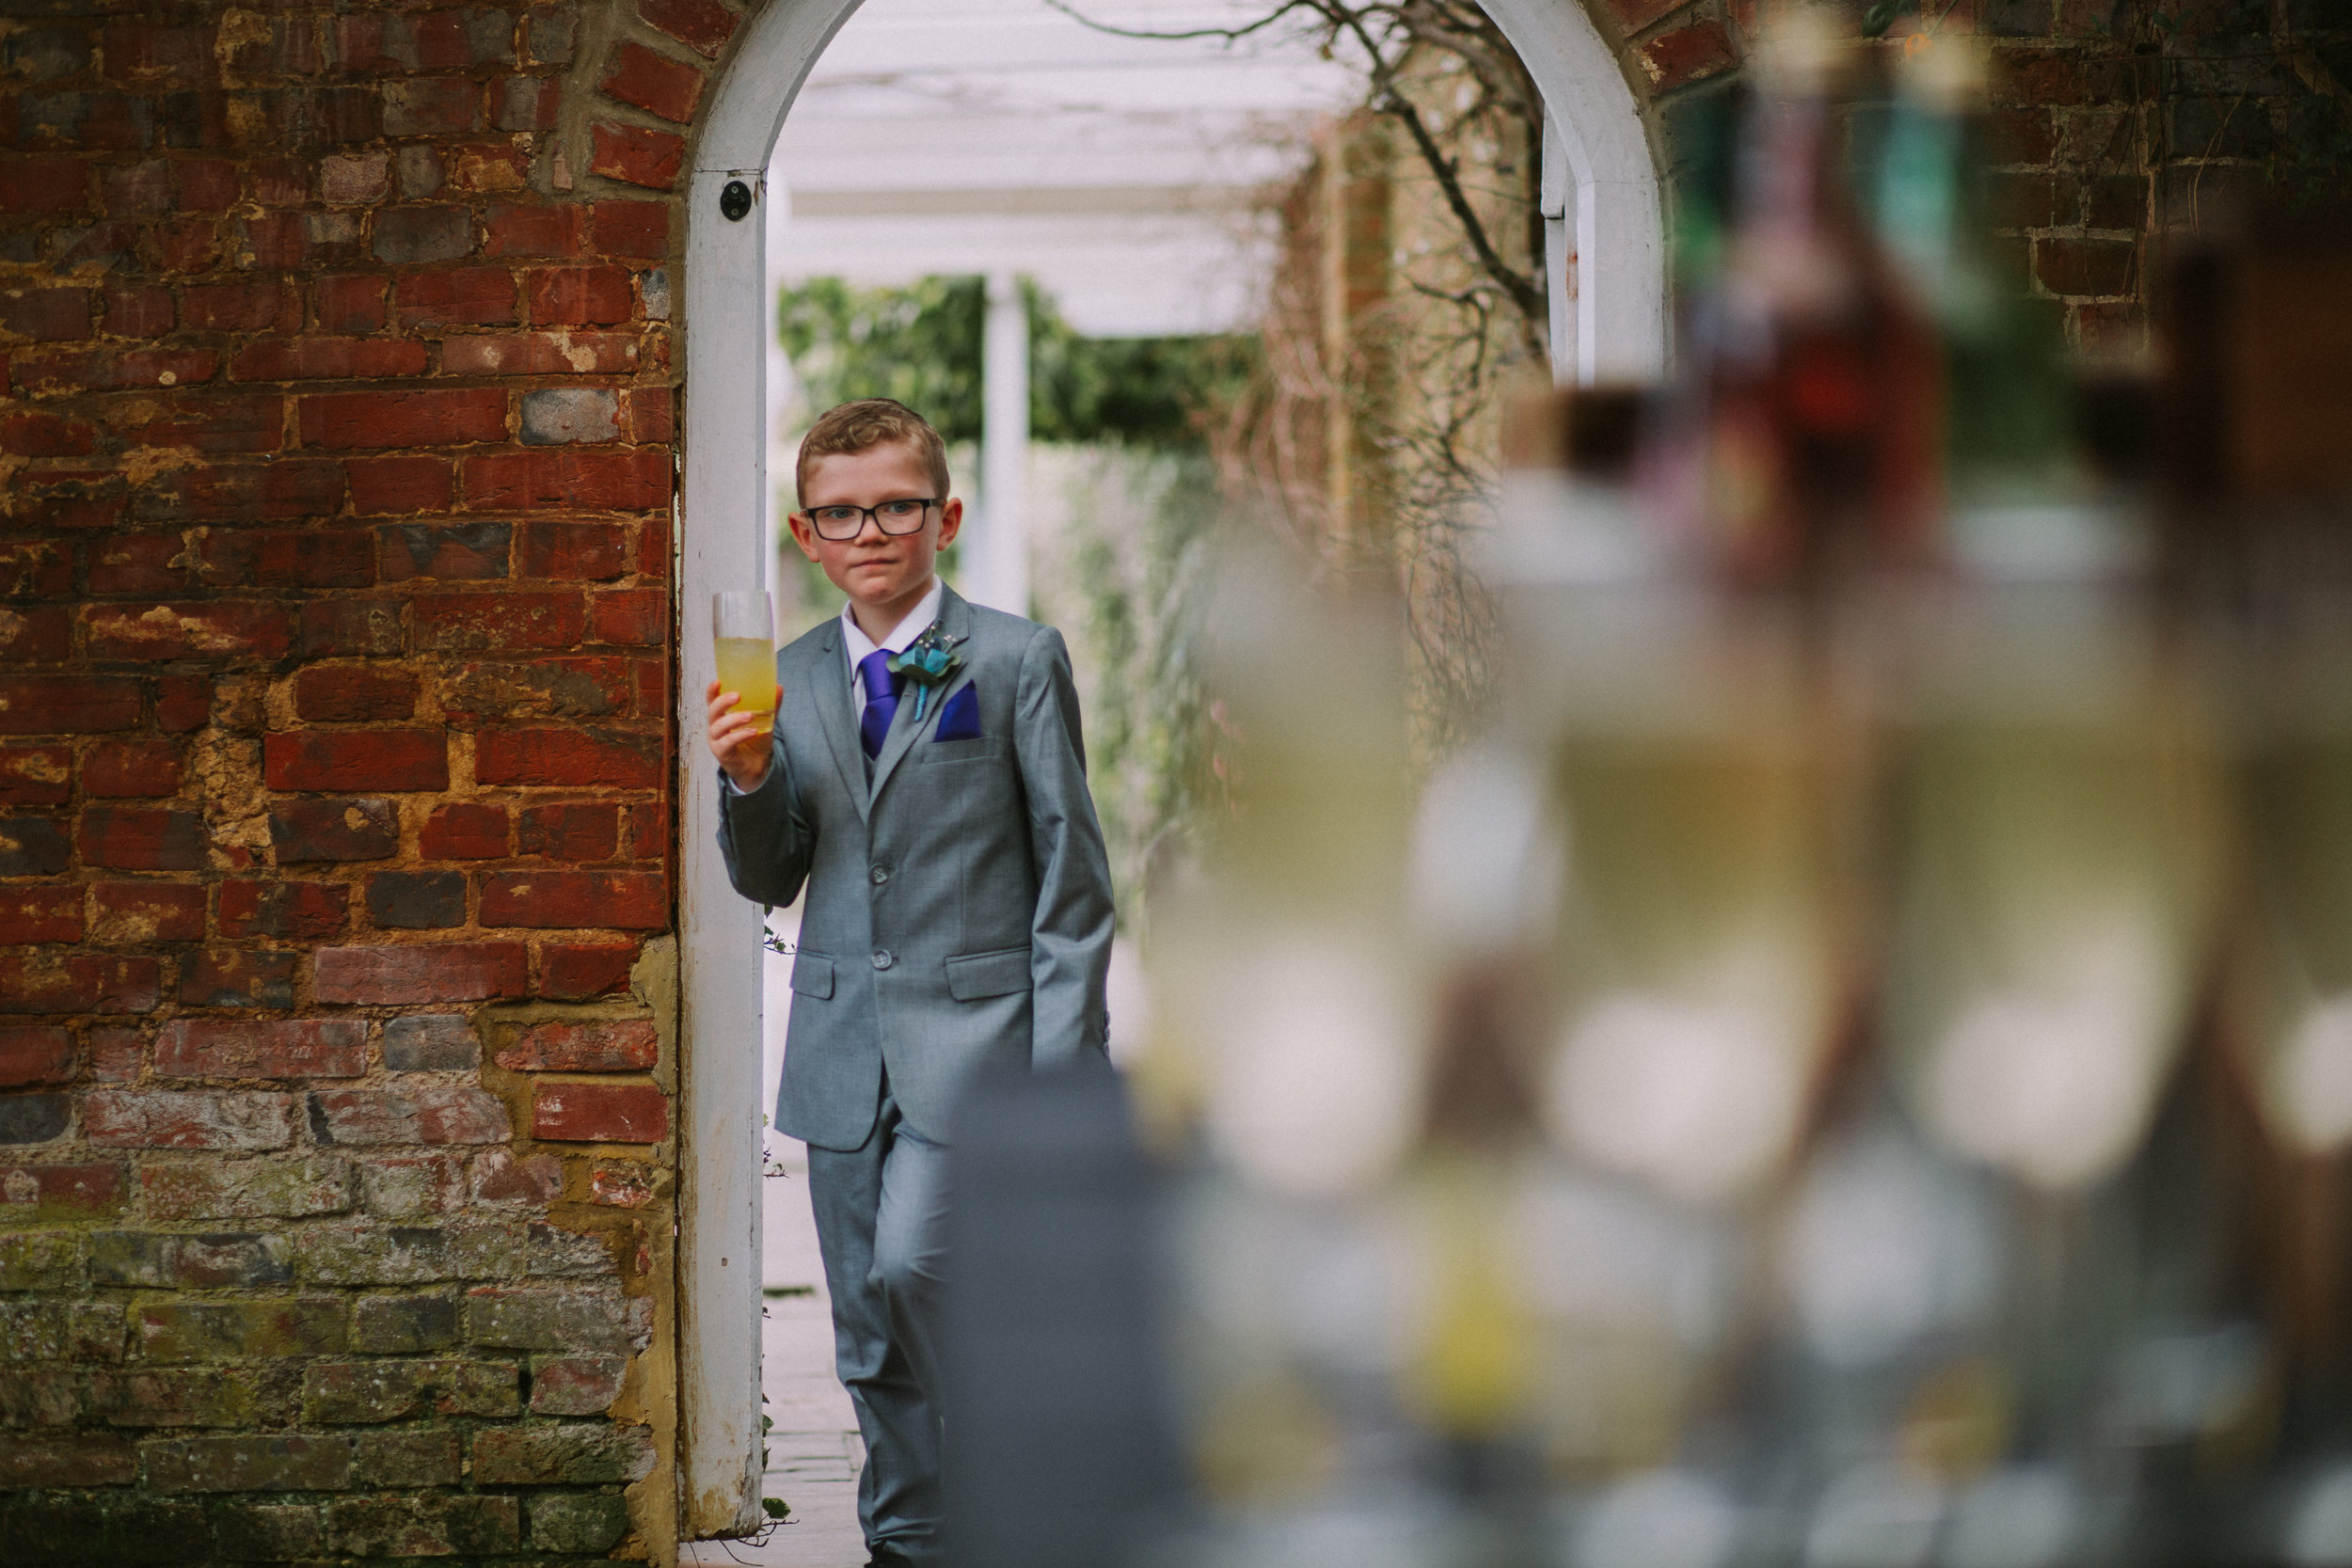 northbrook-park-farnham-hampshire-winter-spring-wedding-photography-27